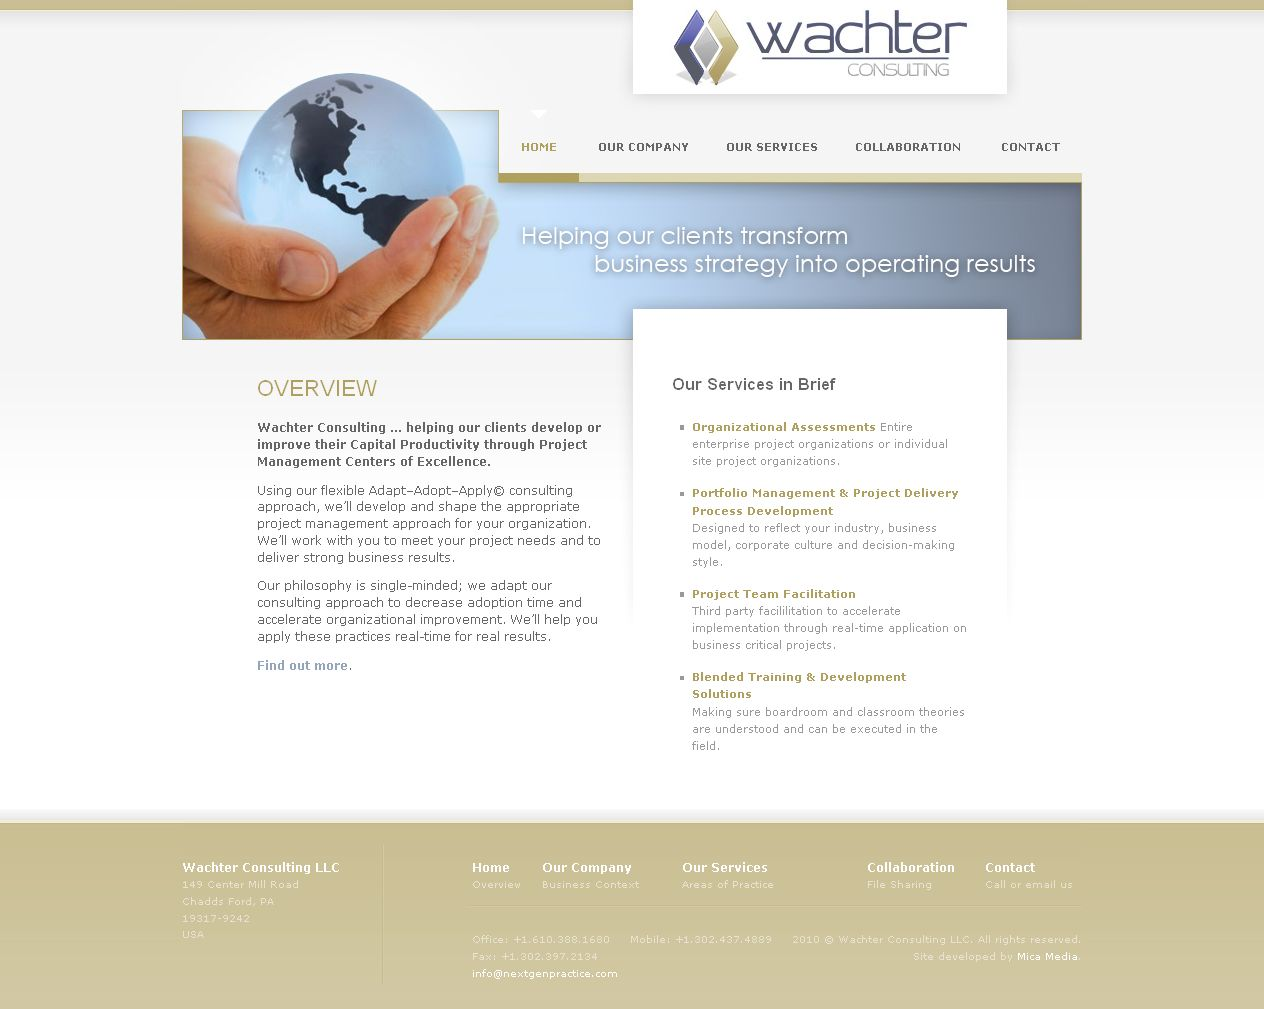 Wachter Consulting